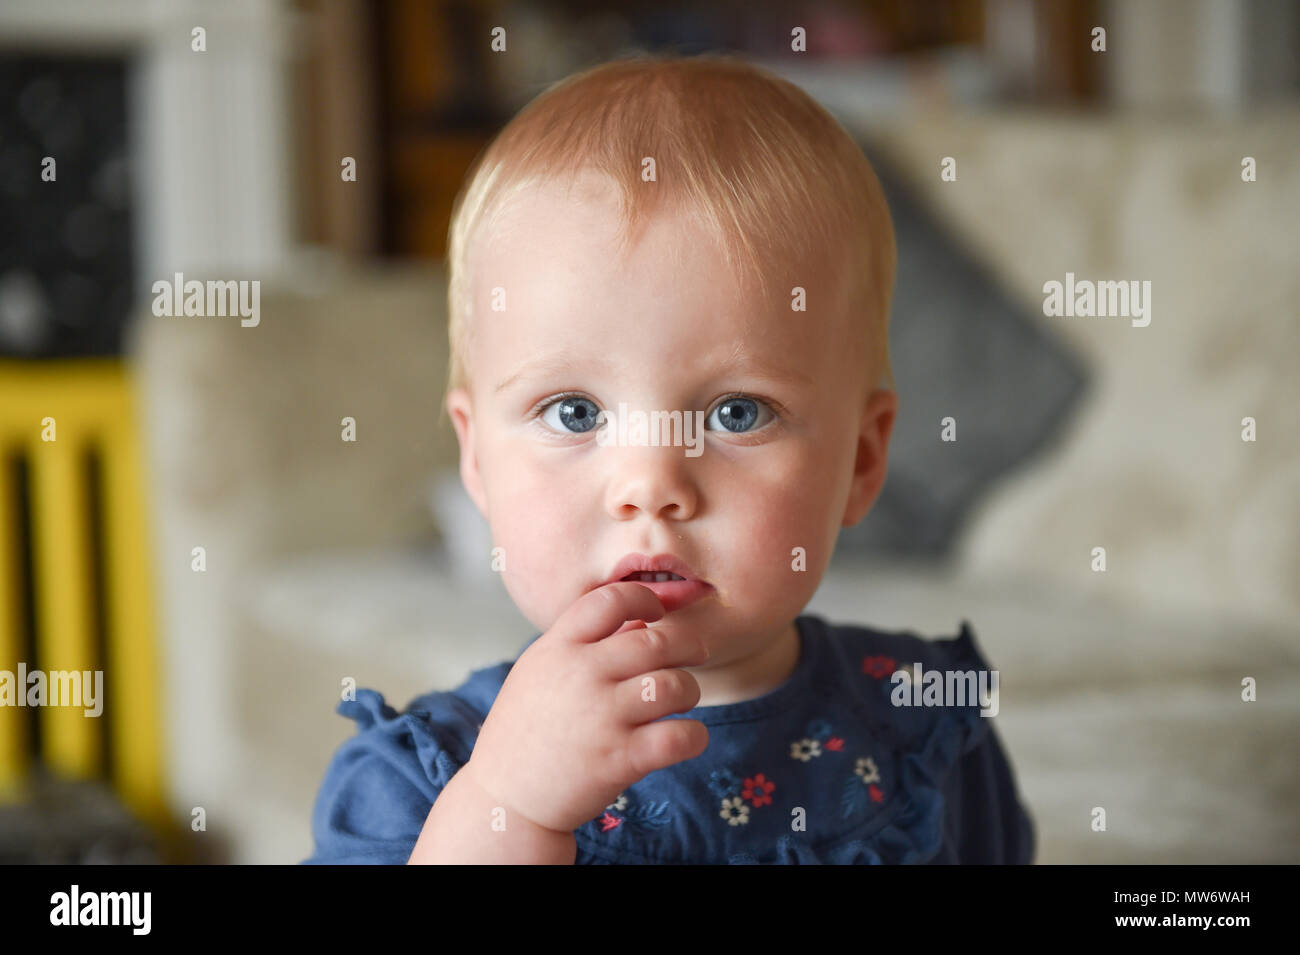 7fe64c739 Beautiful Young baby girl toddler at 18 months old with short blonde hair -  model released